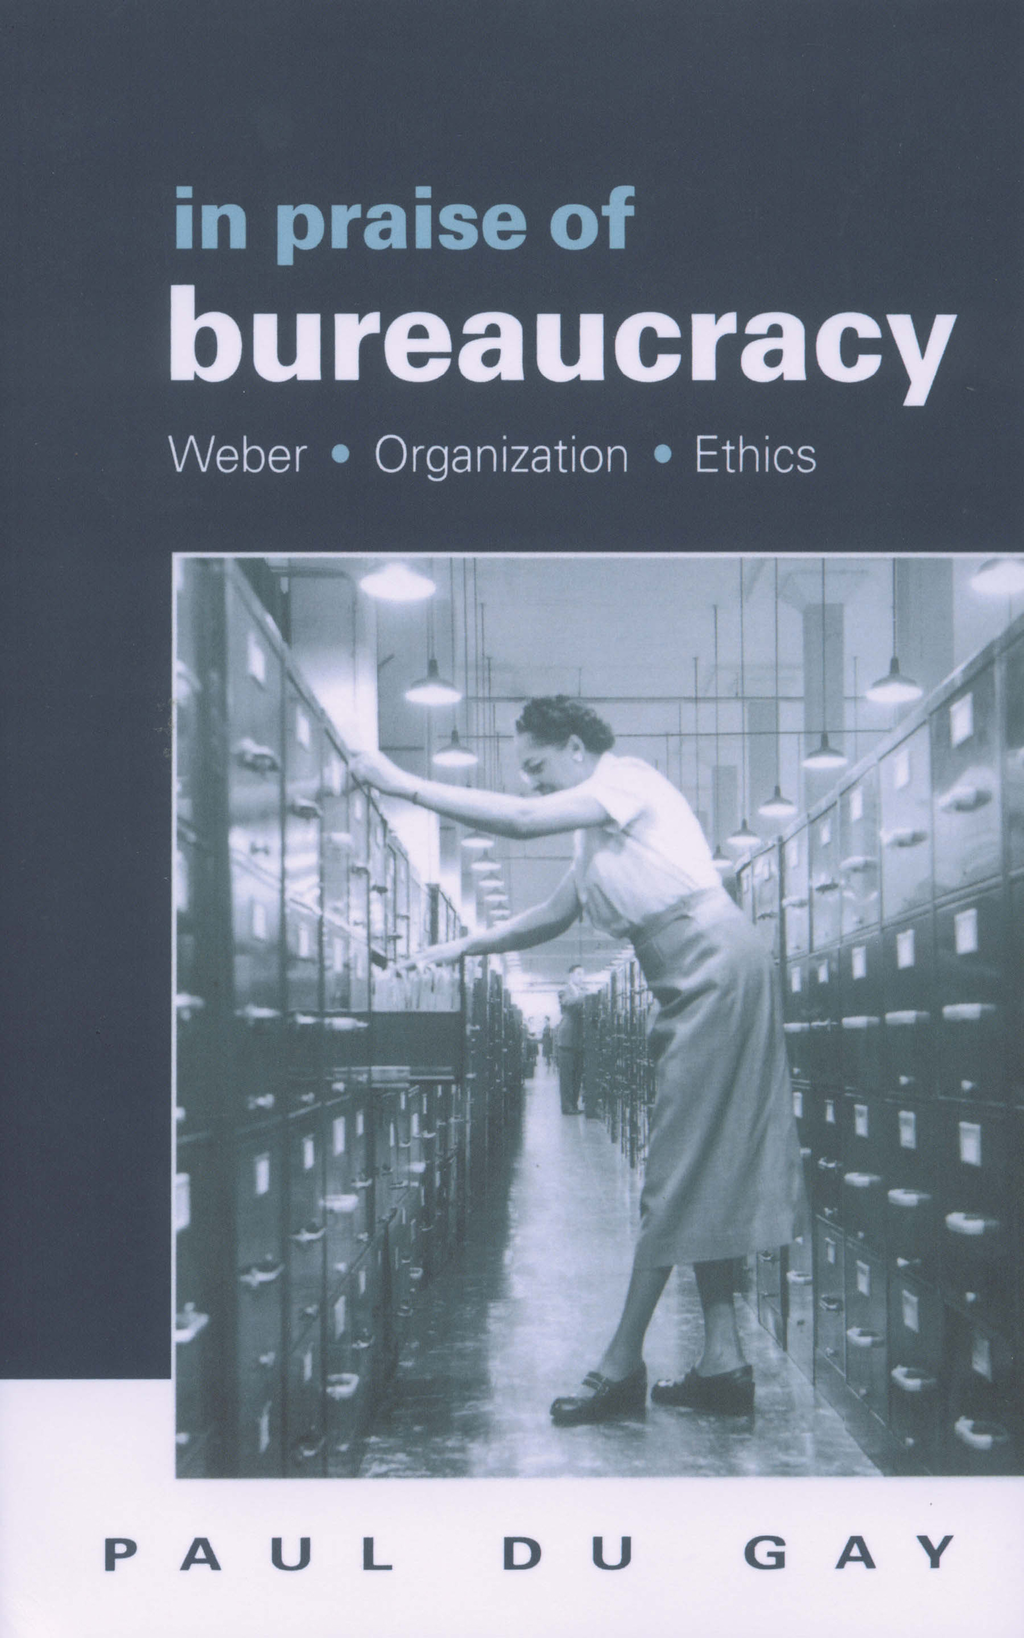 In Praise of Bureaucracy Weber - Organization - Ethics